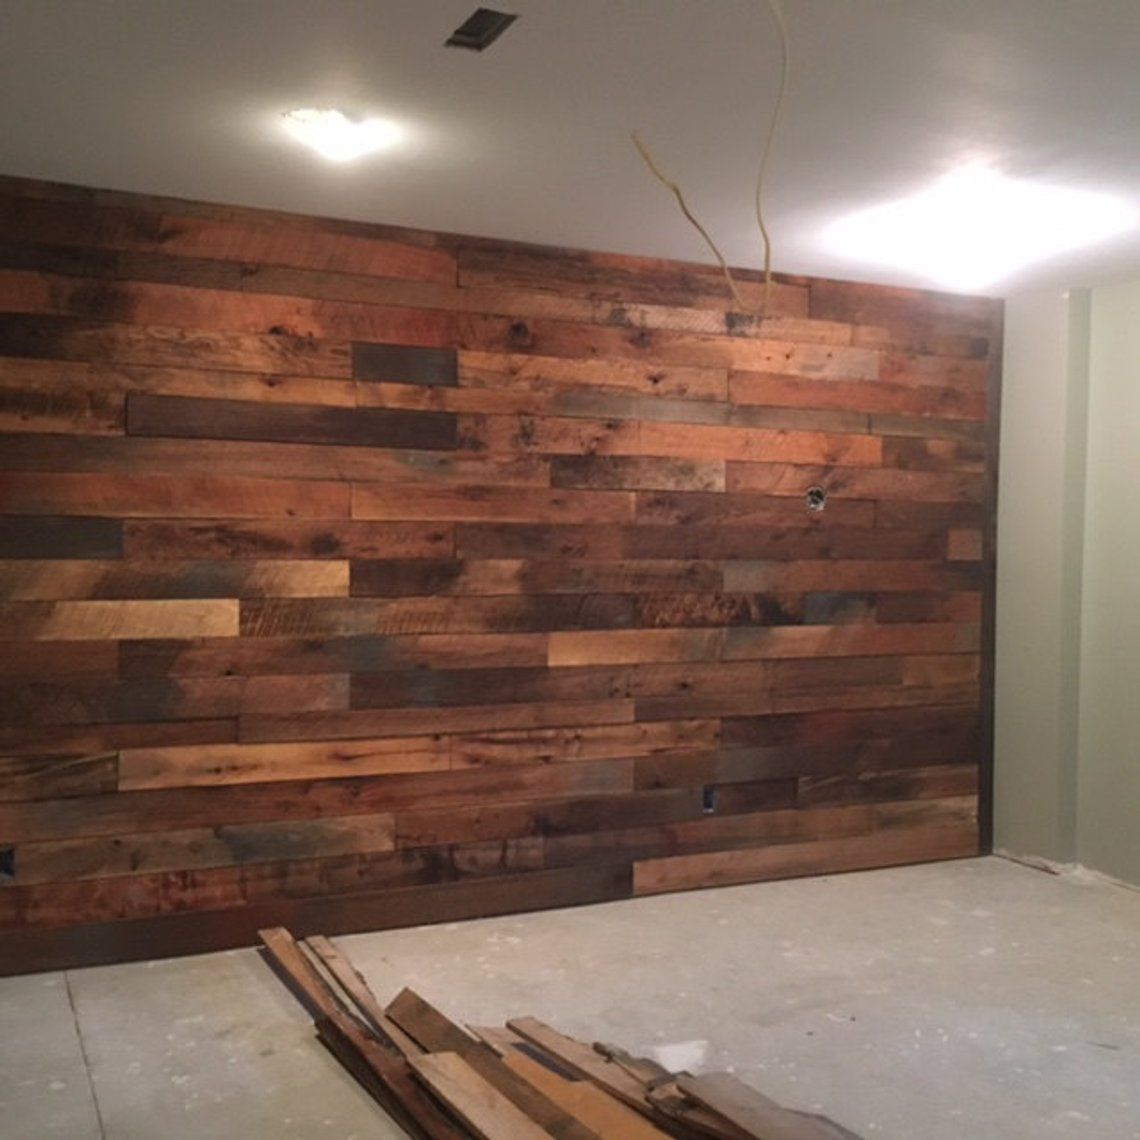 Greenery On Wood Accent Wall: Rough Wood Accent Wall En 2019